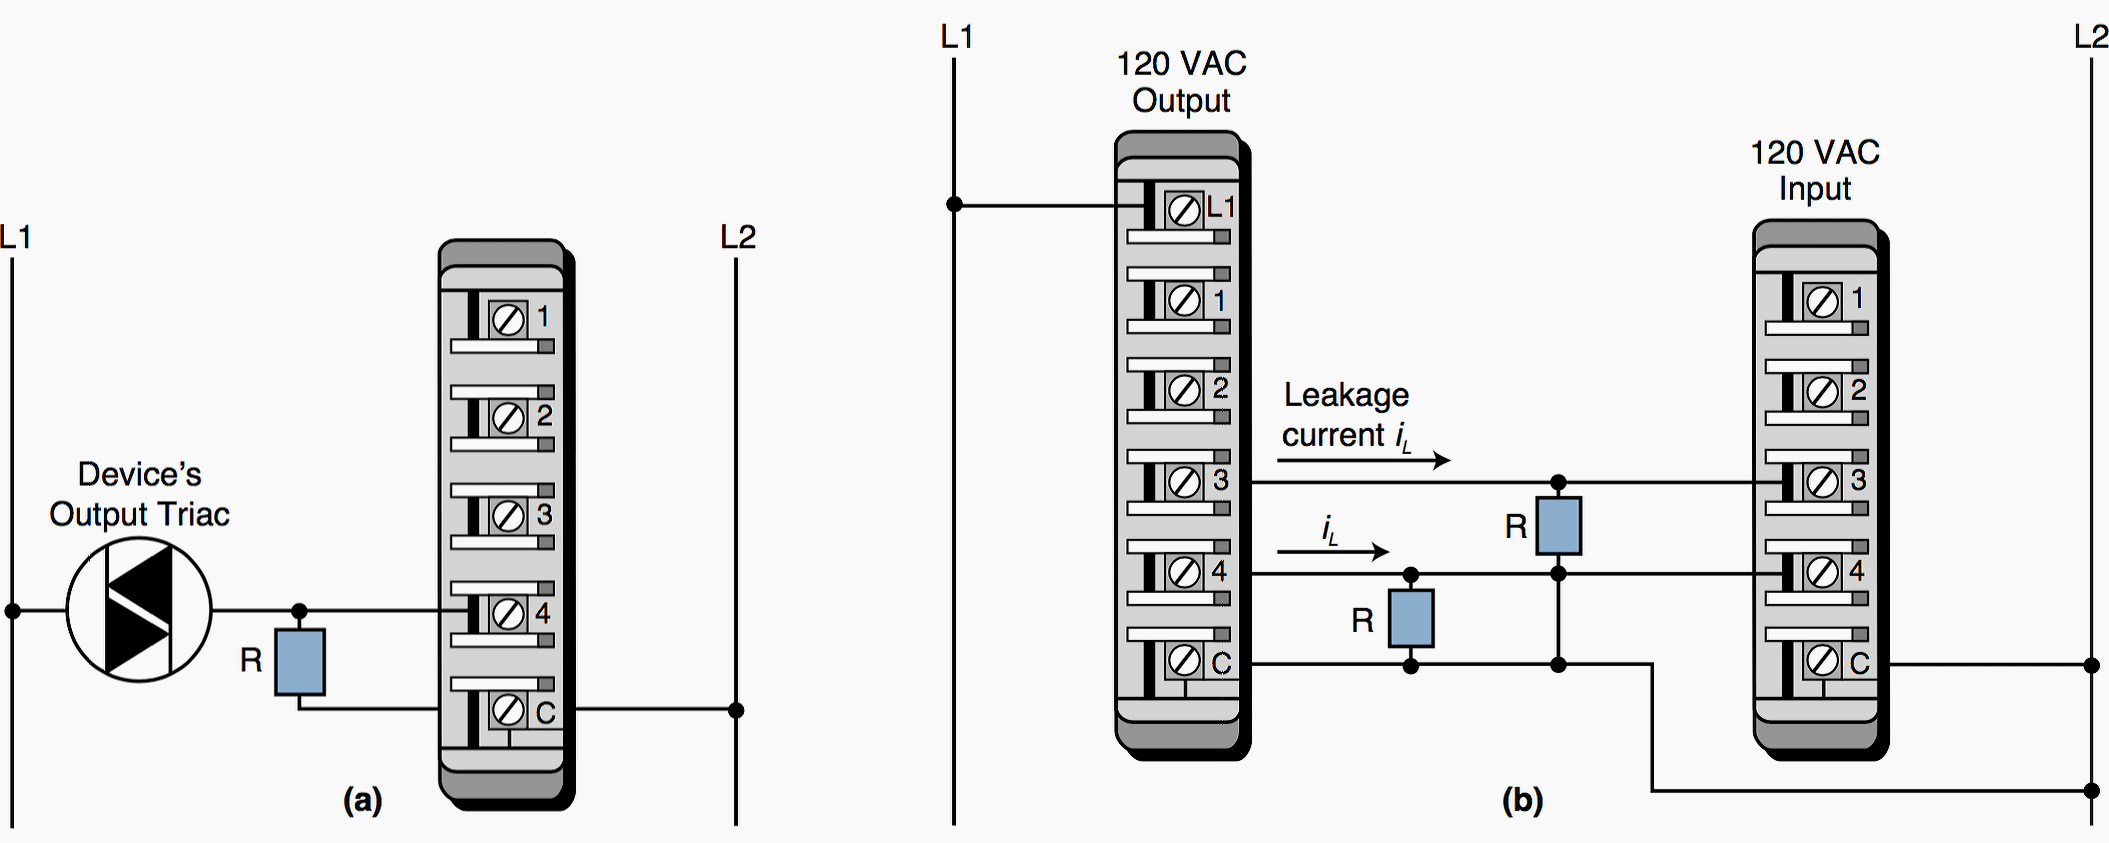 Guidelines For Plc Installation Wiring And Connection Precautions